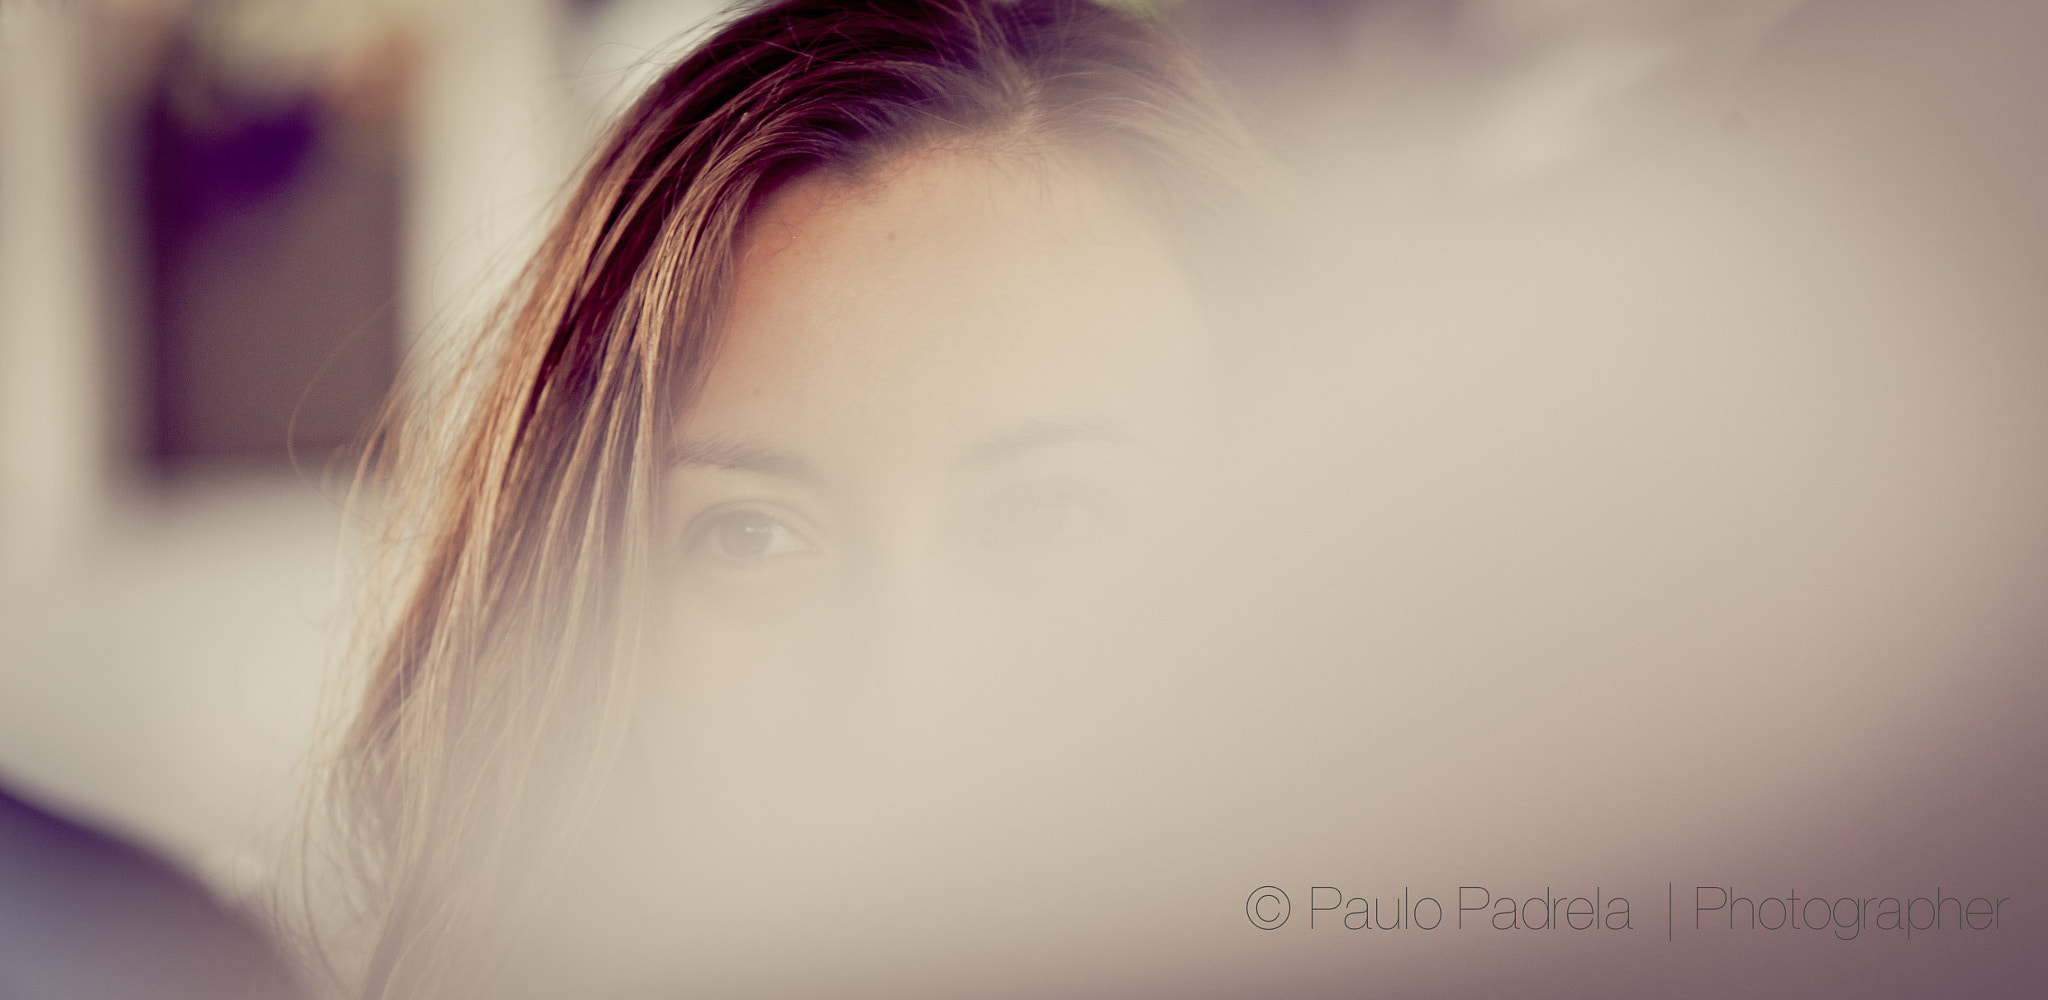 Photograph Eyes just for you... by paulopadrelafotografos on 500px